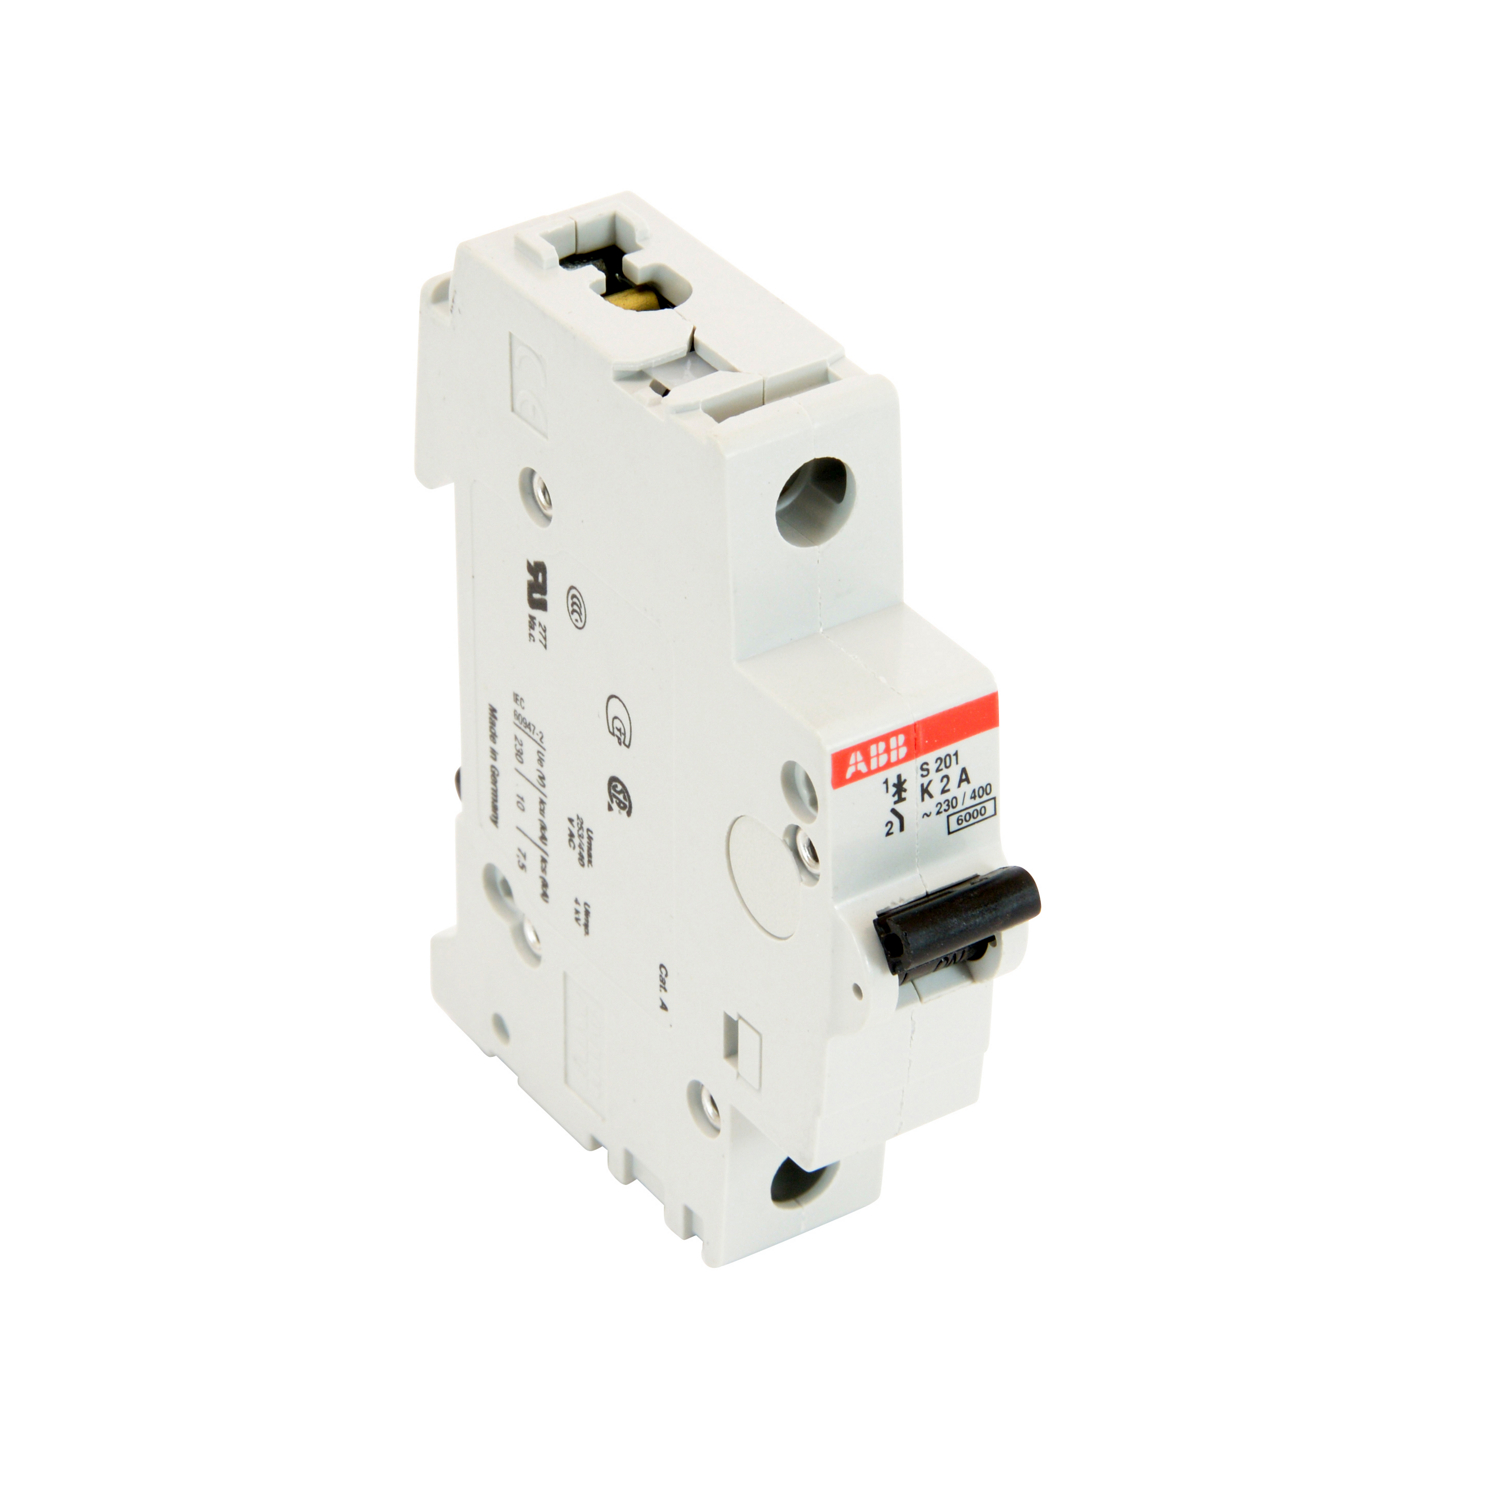 ABB S201-K2 1 pole, 2 amp rated at 480Y/277 VAC, UL 1077 series miniature circuit breaker with thermal-magnetic trip device, K trip curve, and 6kA interrupt current rating